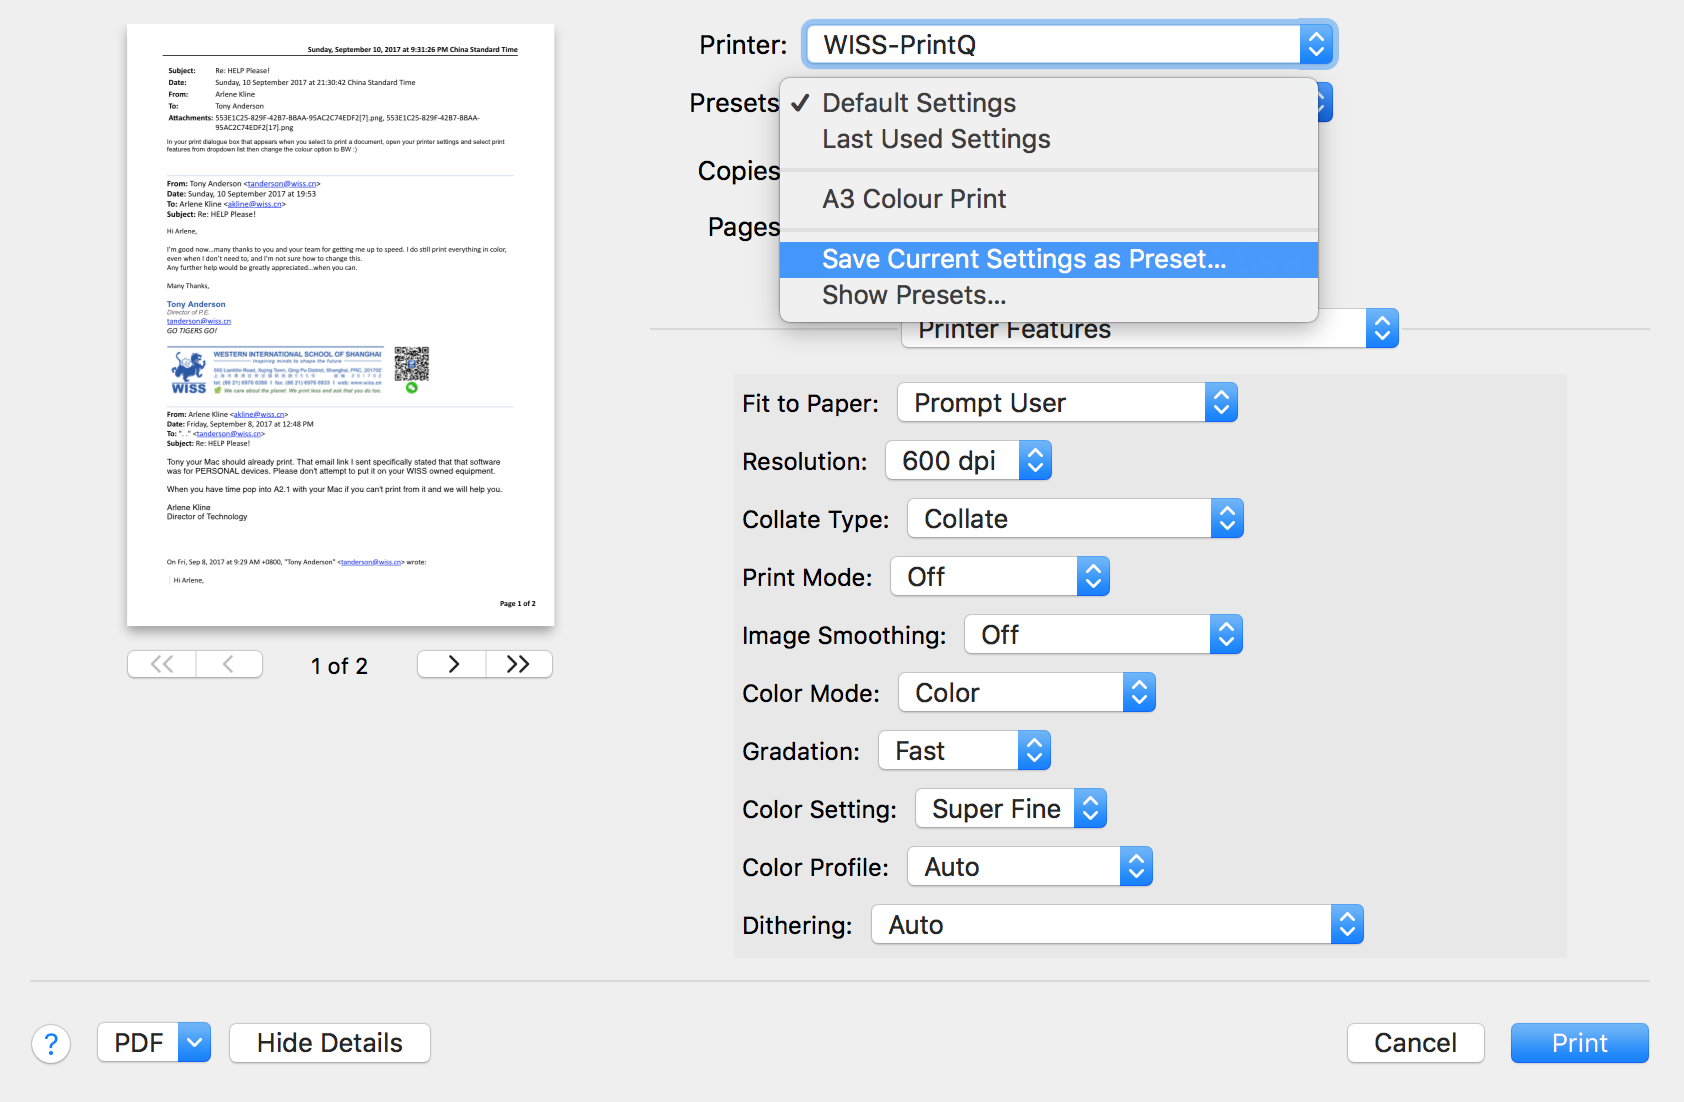 How do I change printer presets / preferences on a Mac? : WISS IT